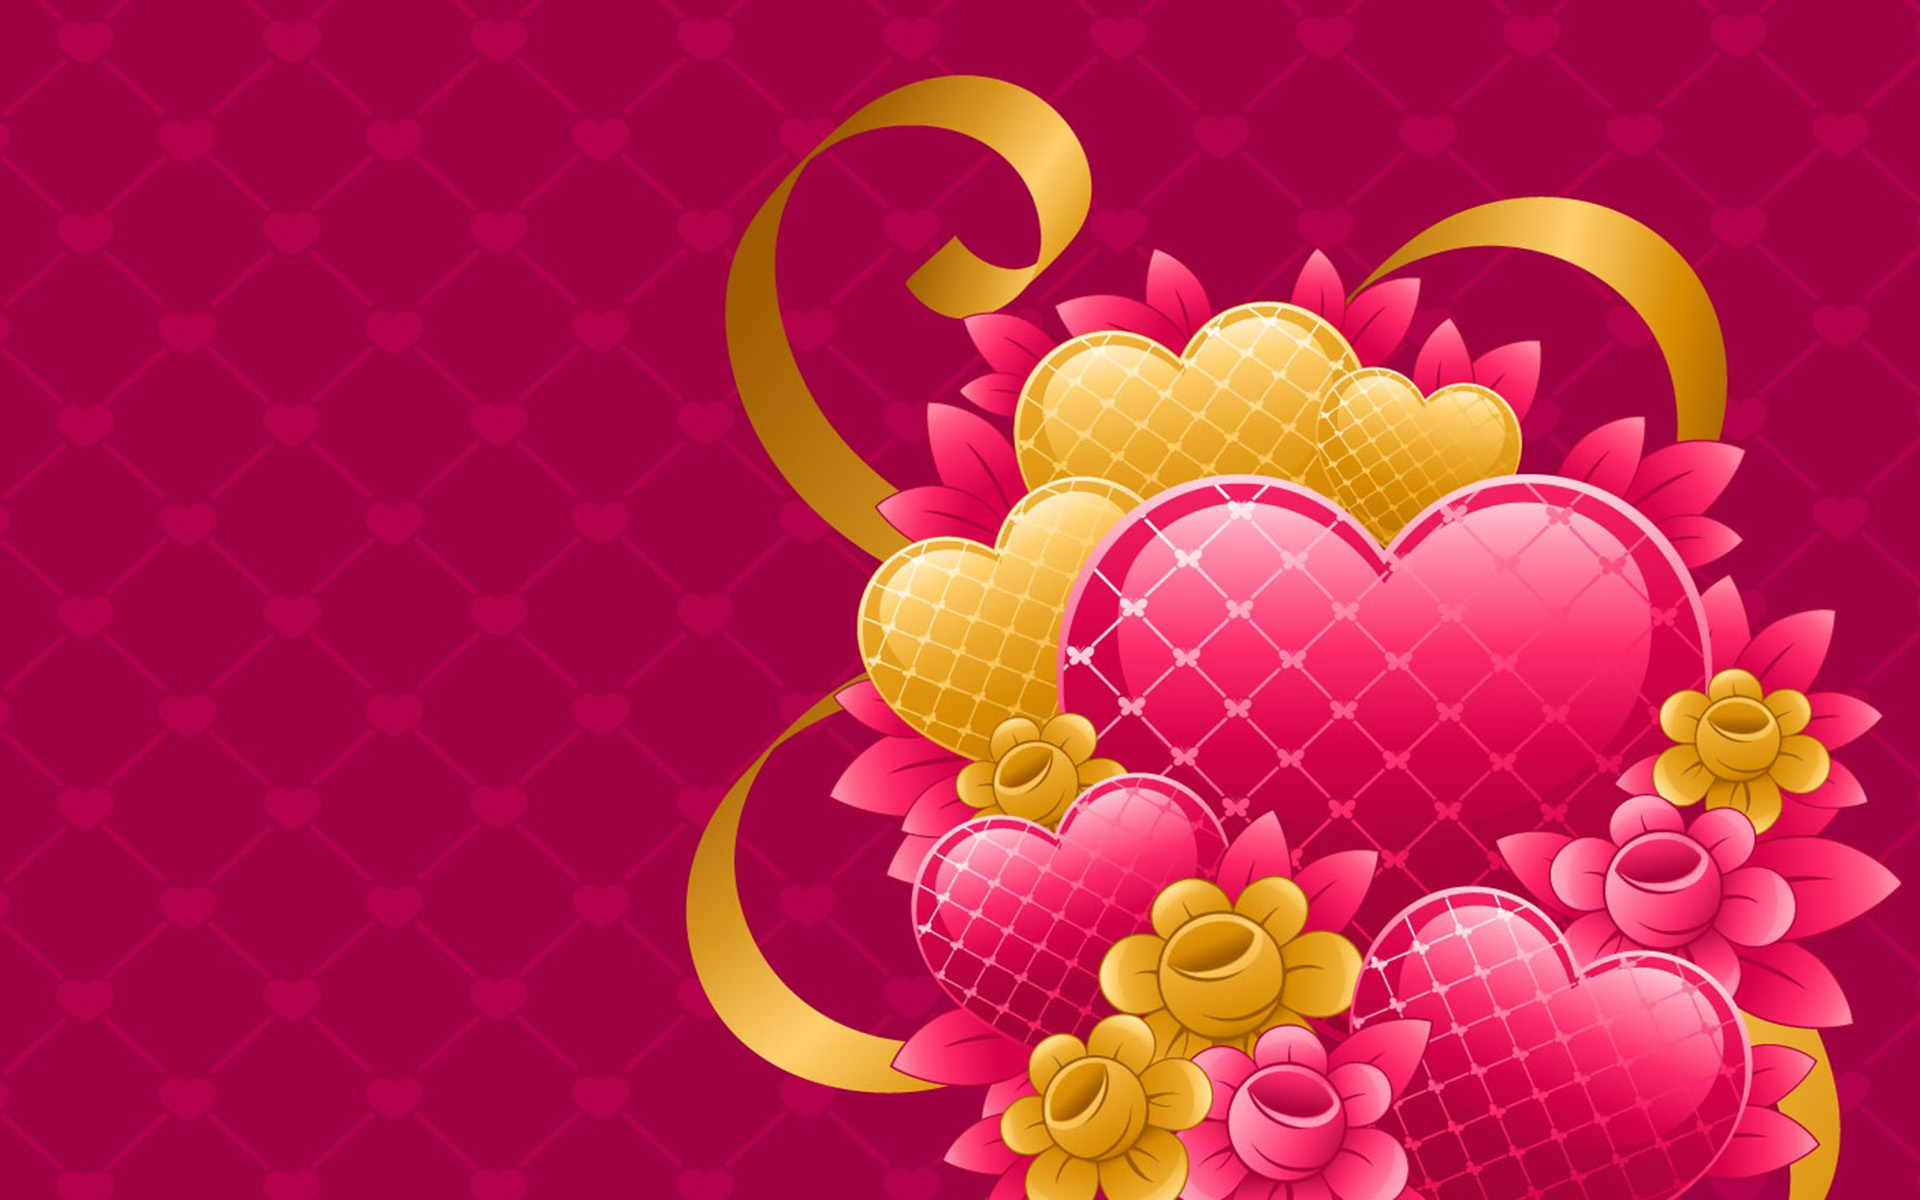 L Love U Hd Wallpaper : Download Gambar Wallpaper Love - Gudang Wallpaper